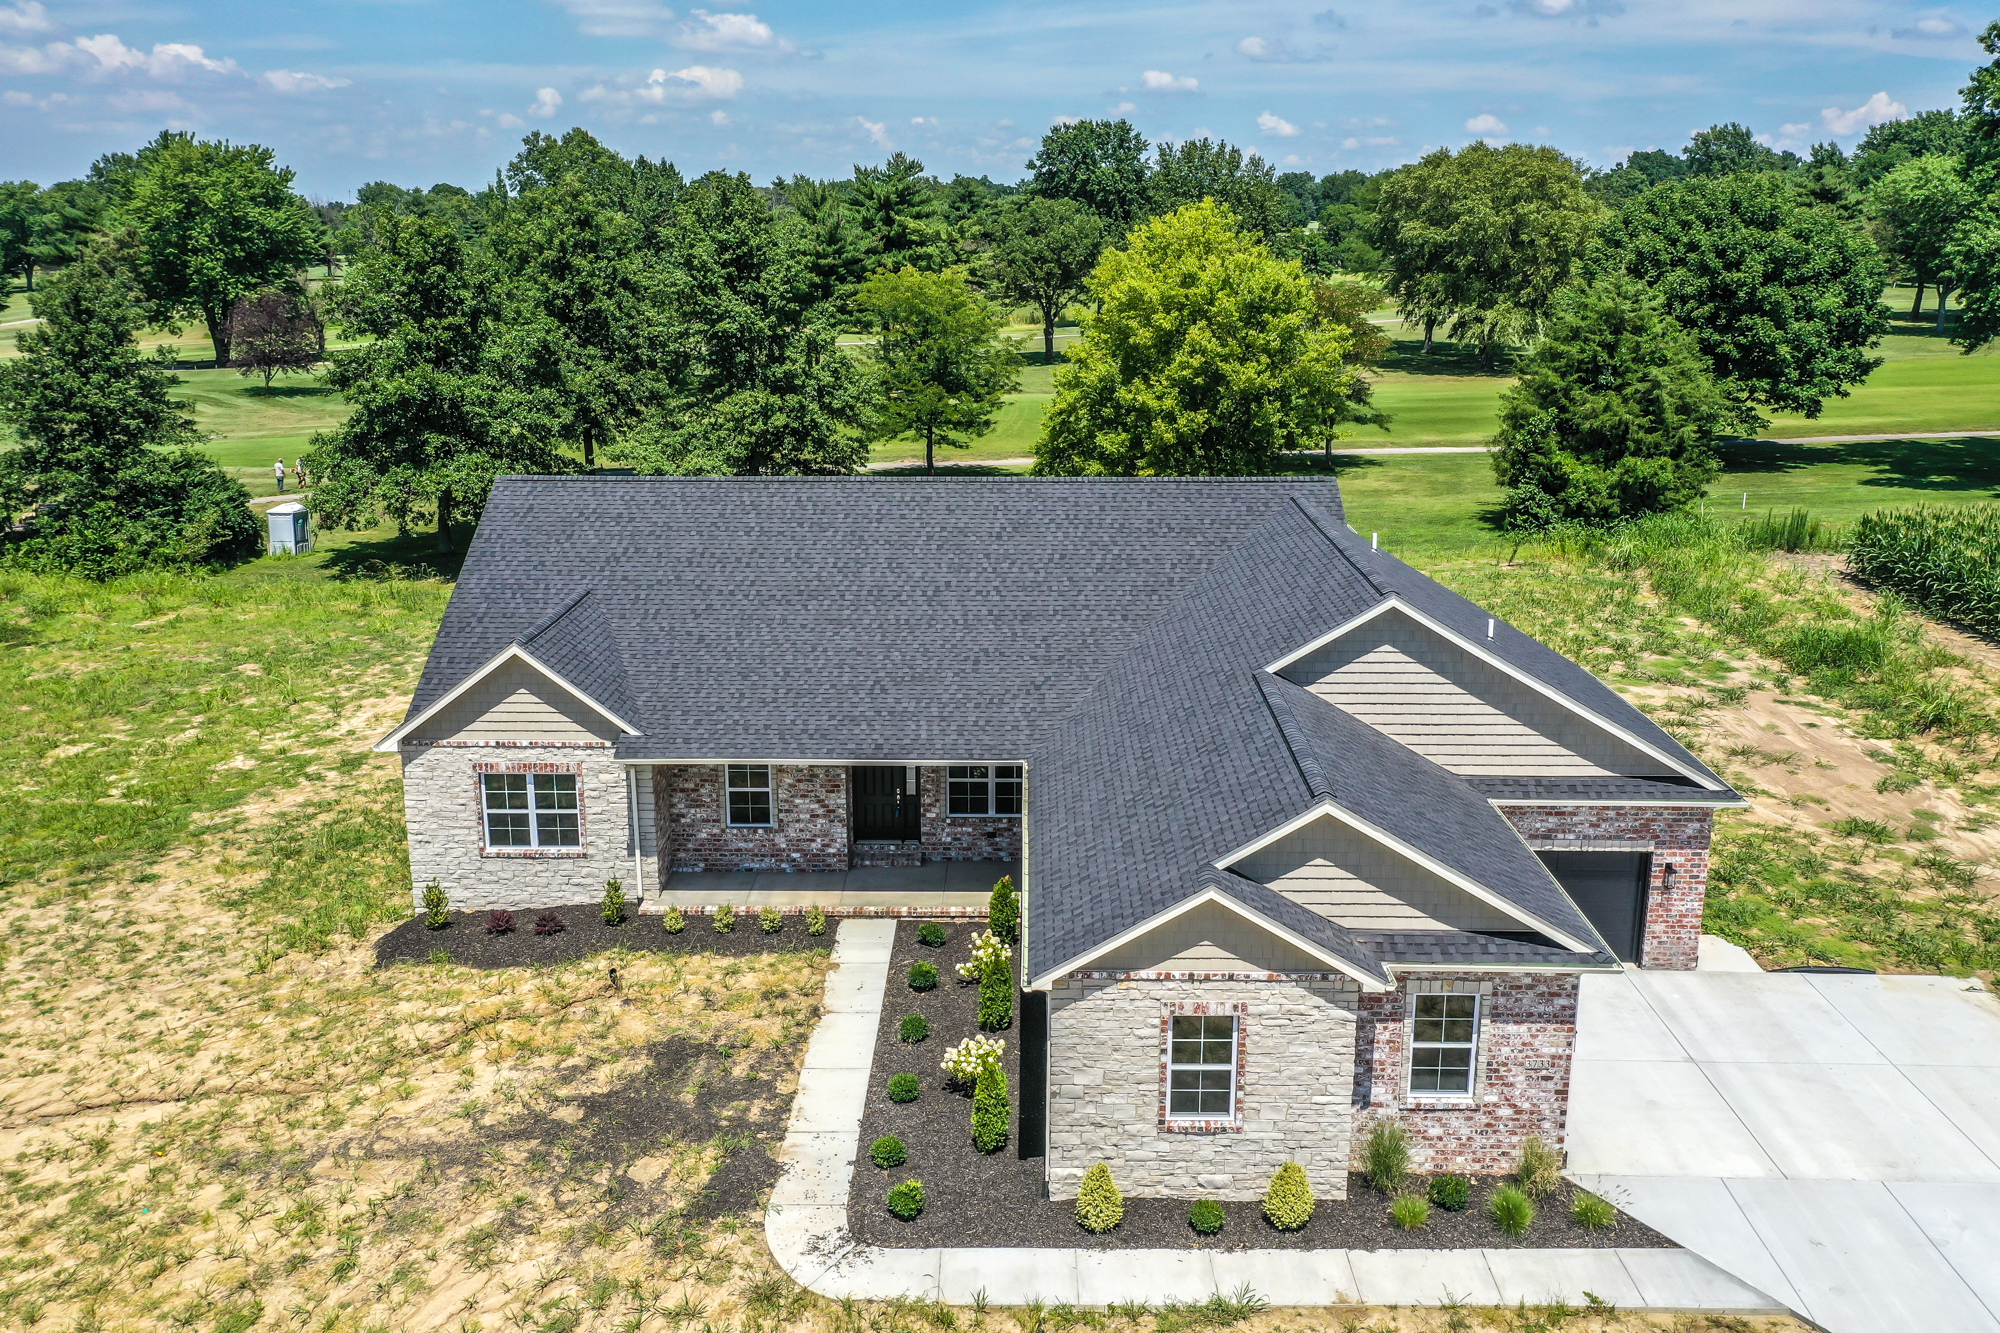 New_Construction_Homes_For_Sale_Shiloh_Illinois_Near_Scott_AFB-19.jpg